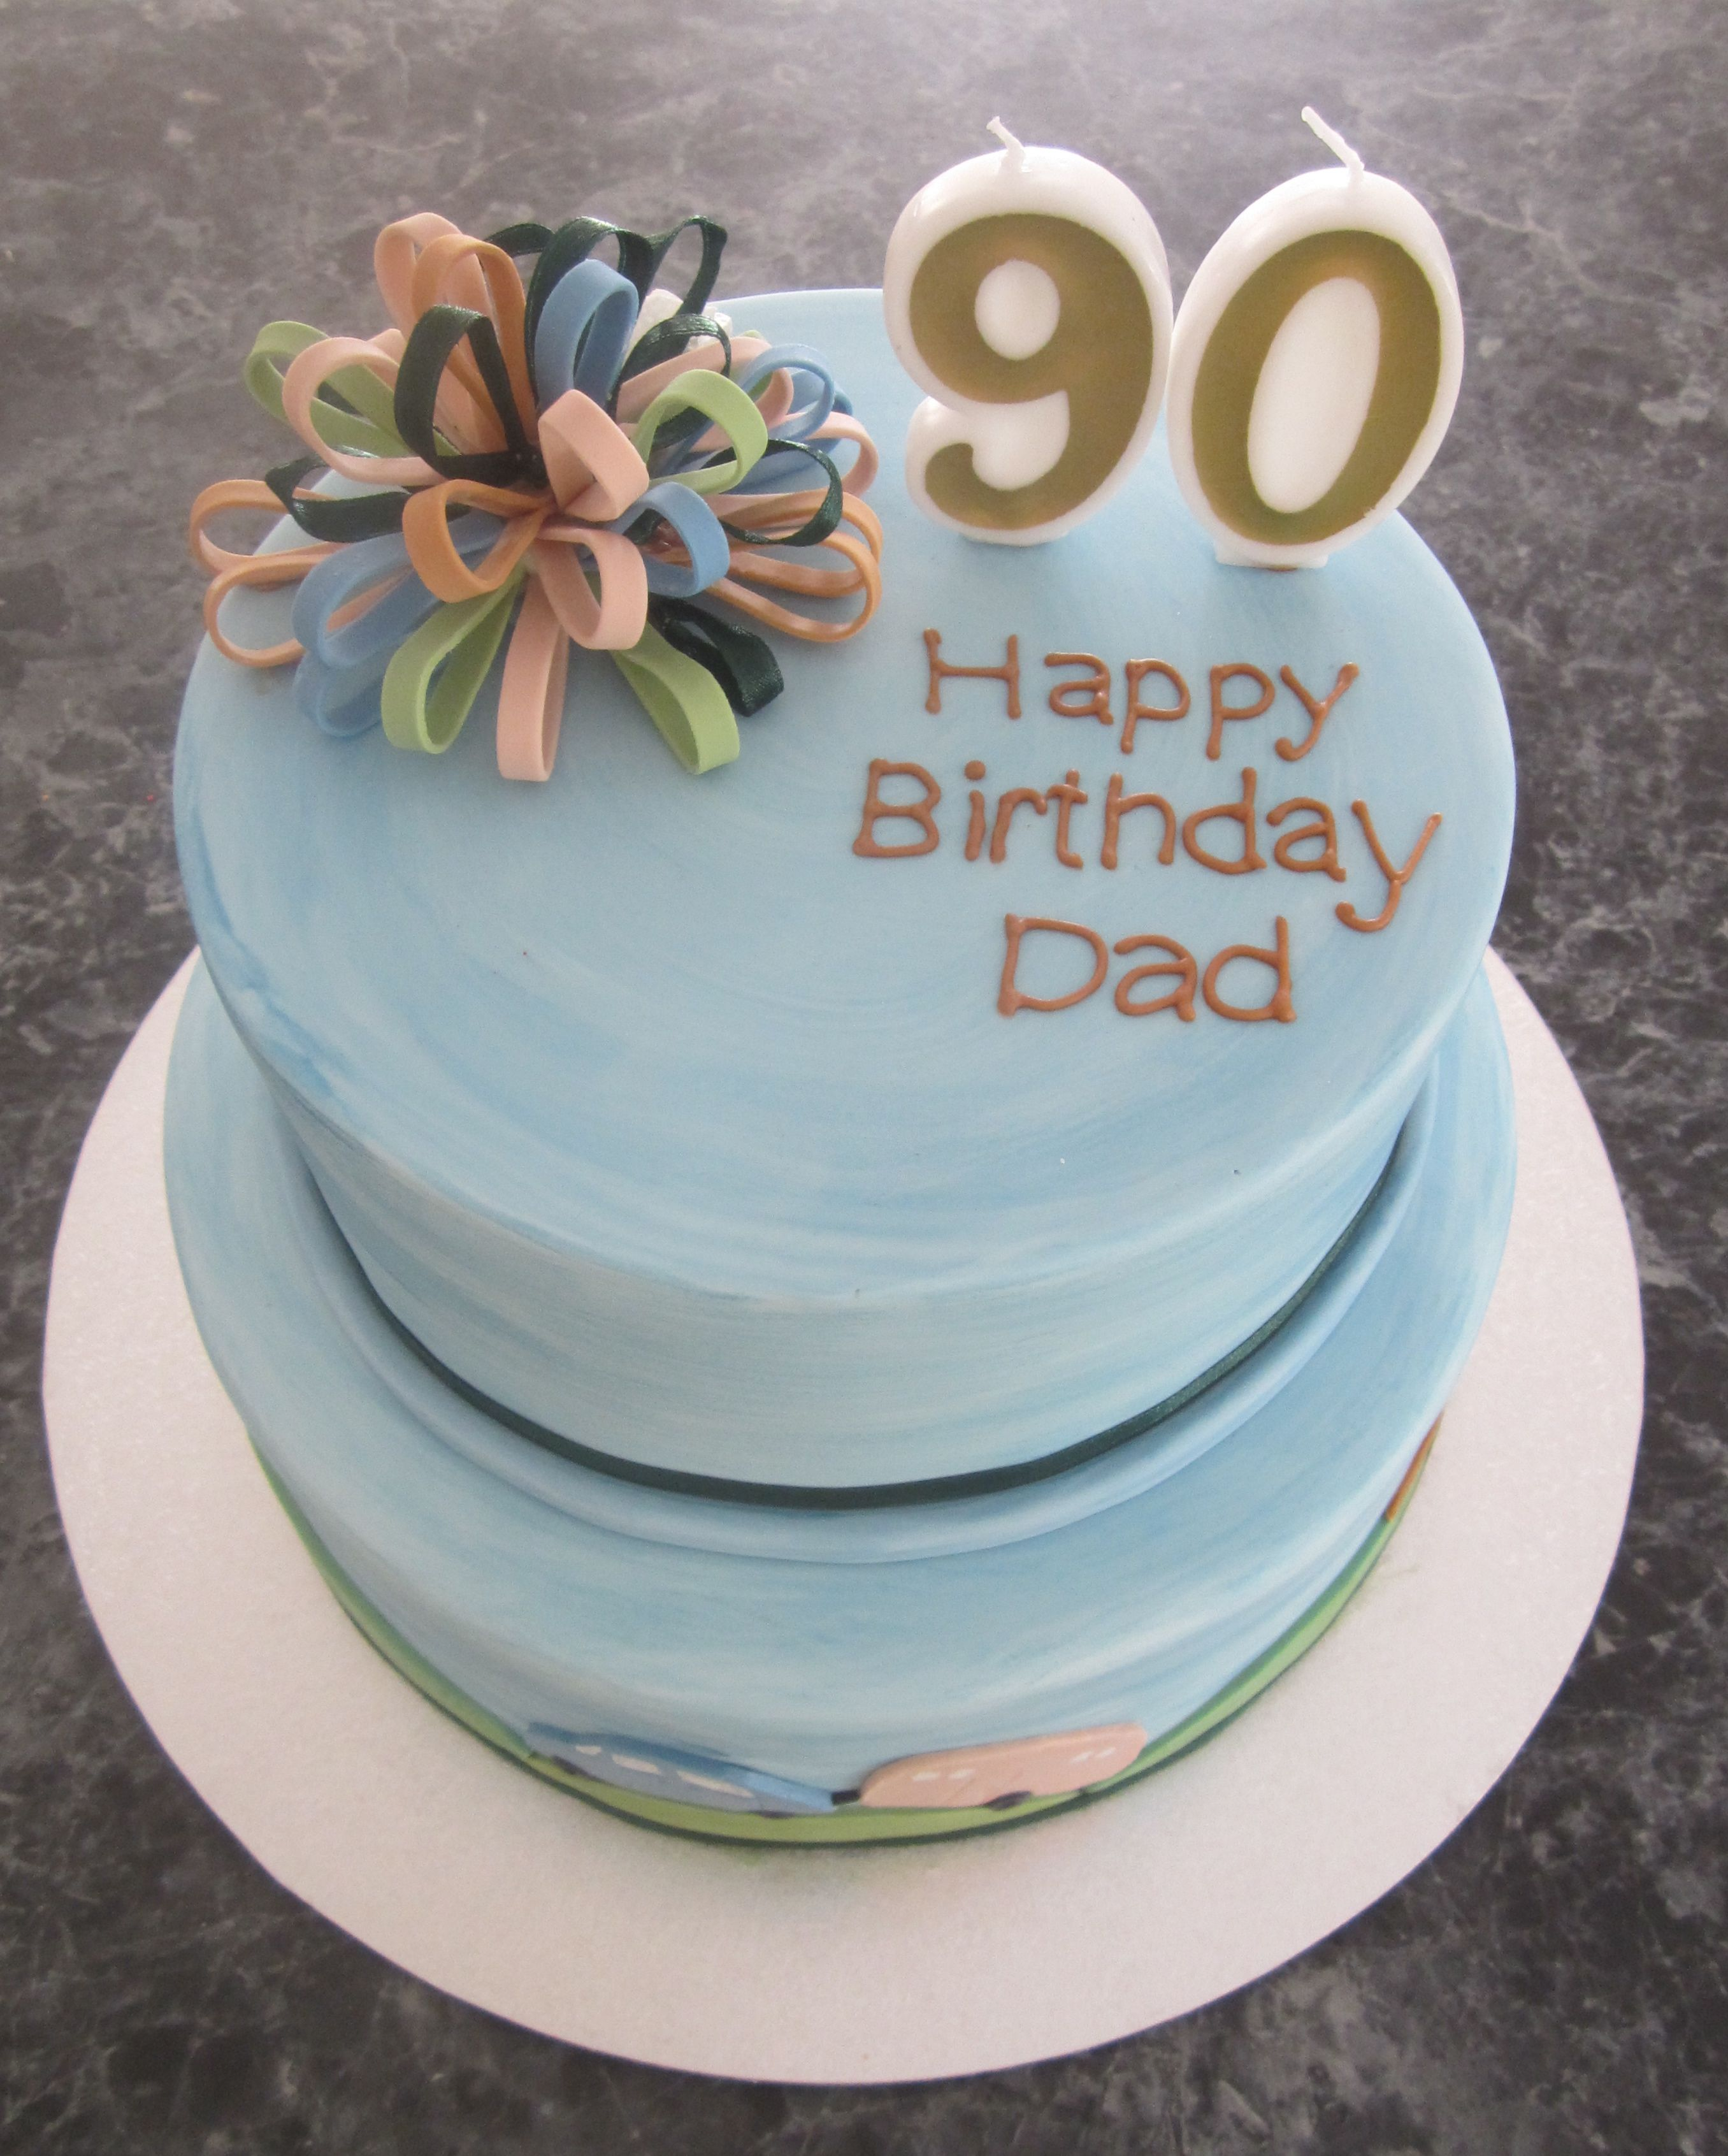 Image Result For Male 90th Birthday Cake